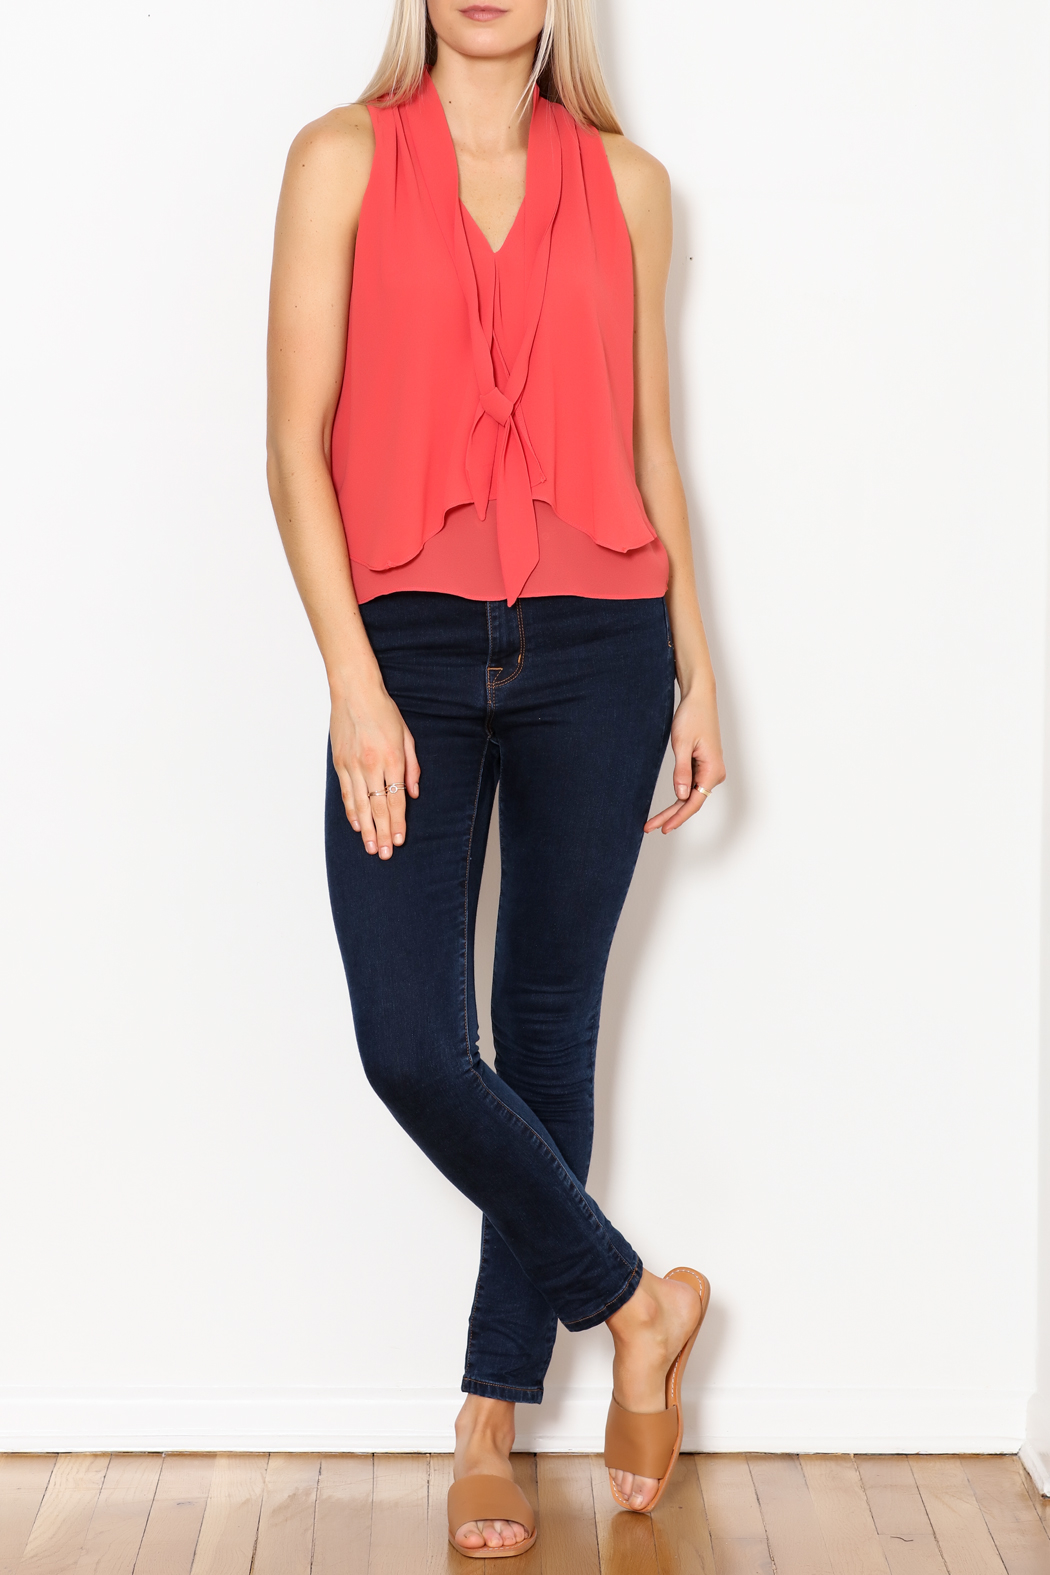 MICHEL Tie Front Blouse - Side Cropped Image